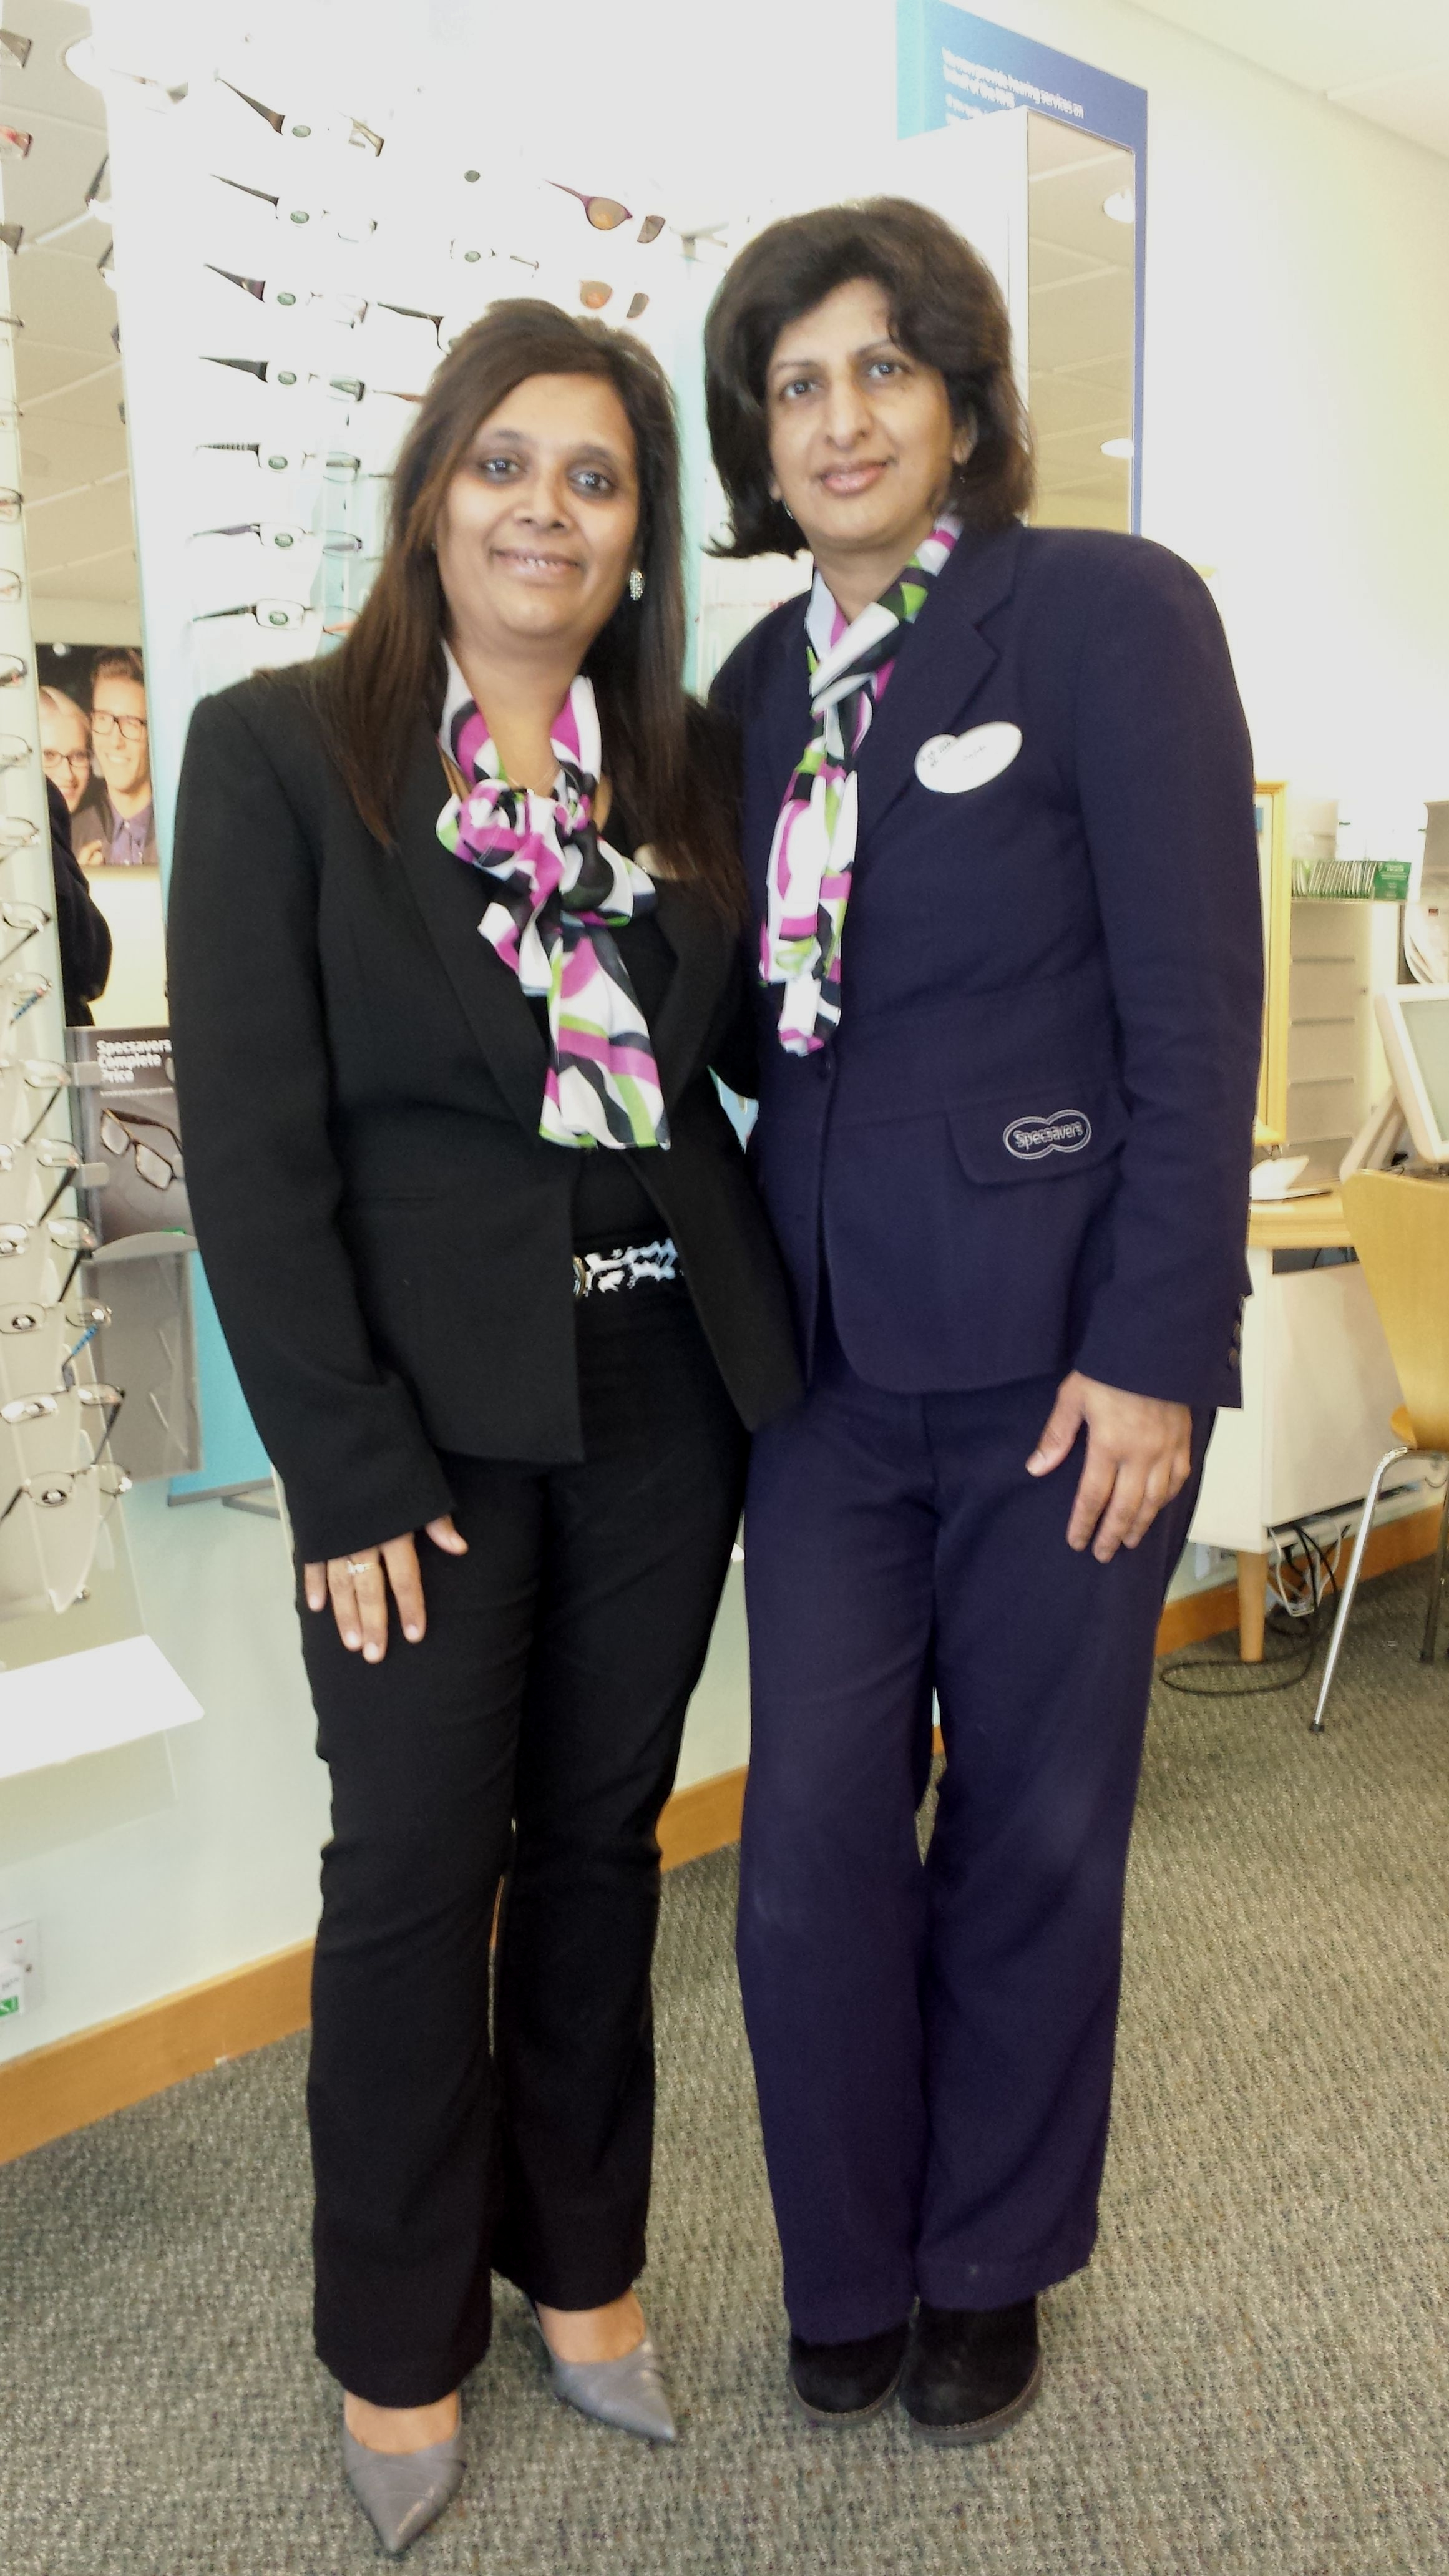 Pragna Raghwani, store director of Specsavers in Barnet, with Sajida Gitay, optical assistant and clinic coordinator.